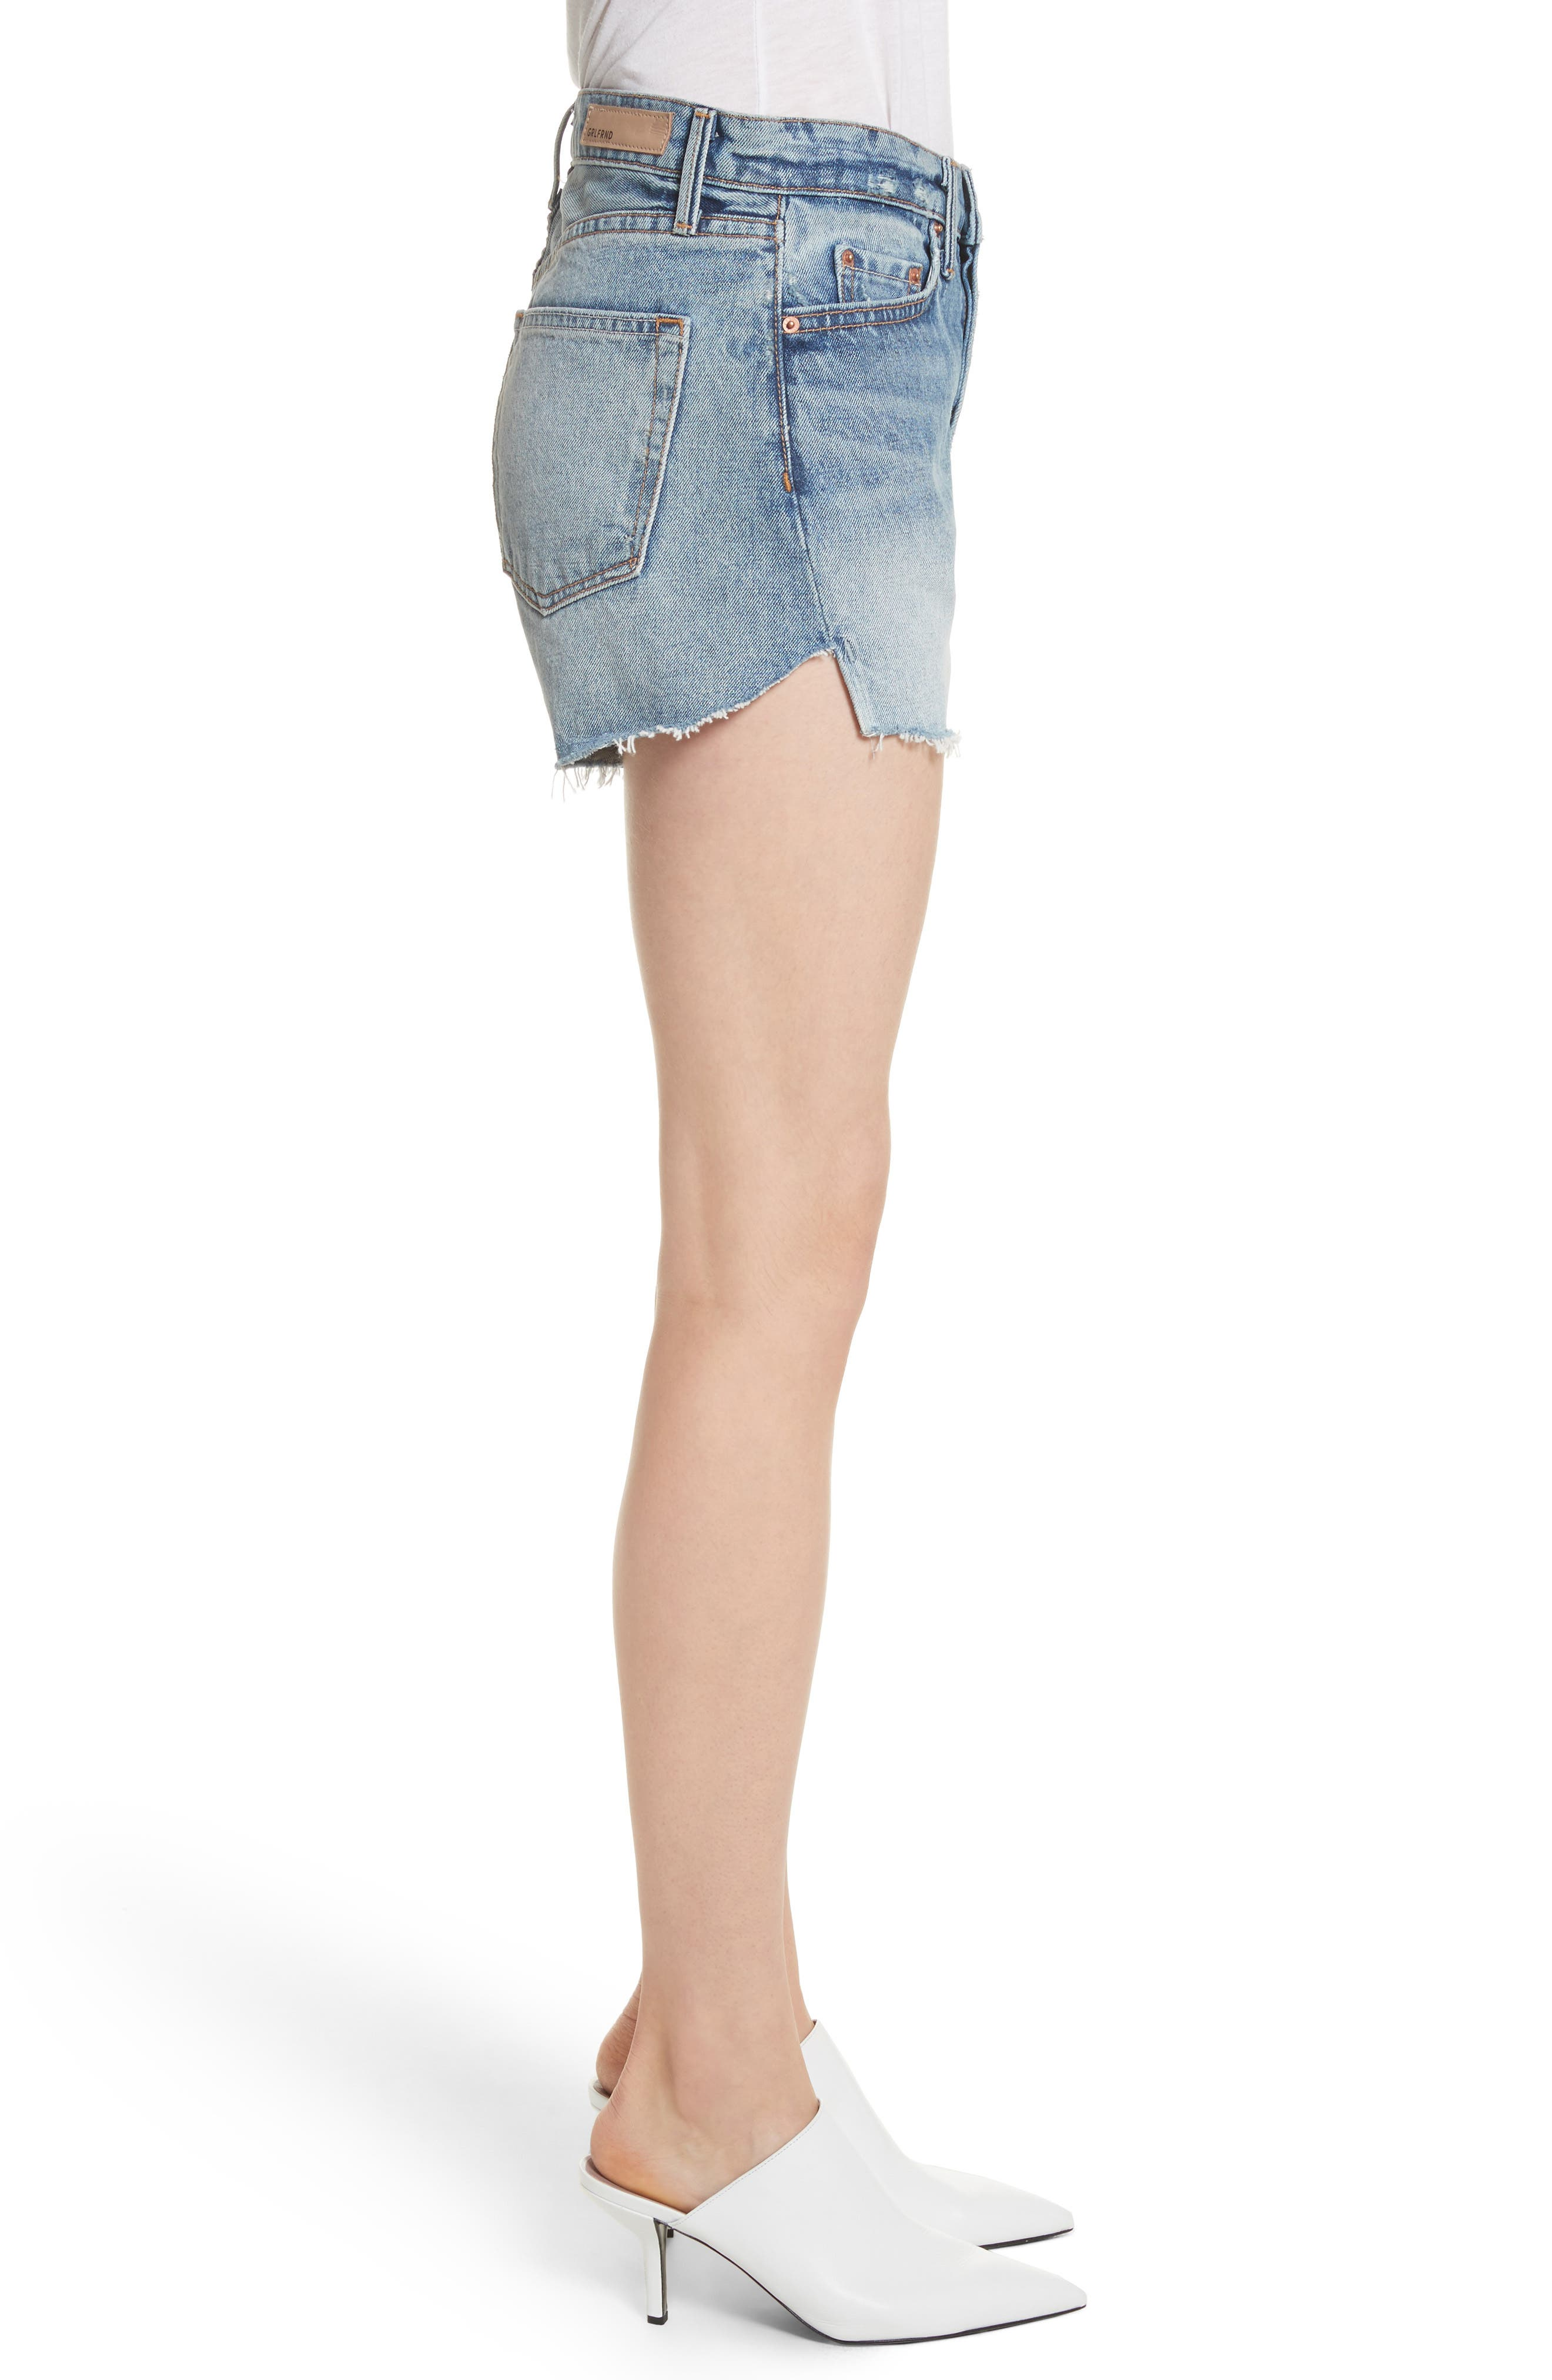 Mardee Denim Shorts,                             Alternate thumbnail 3, color,                             Twisted